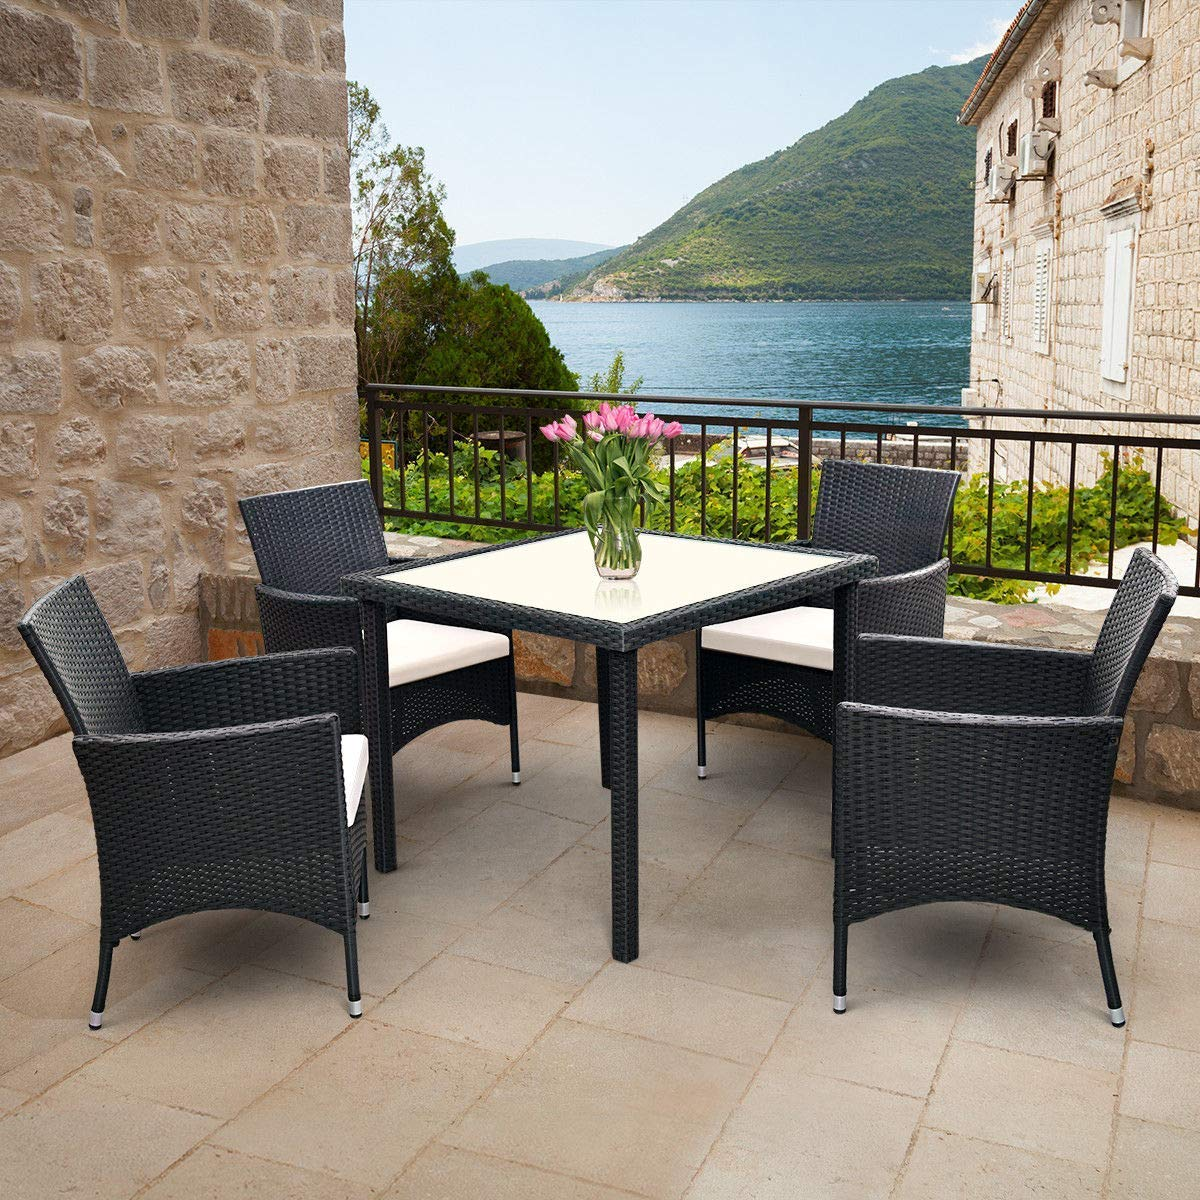 Tangkula 5PCS Patio Wicker Dining Set, Outdoor Lawn Garden Wicker Rattan Table and 4 Chairs, Sofa Furniture Set Cushioned Seat Conversation Set with Removable Cushions & Table Patio Furniture (Black) by Tangkula